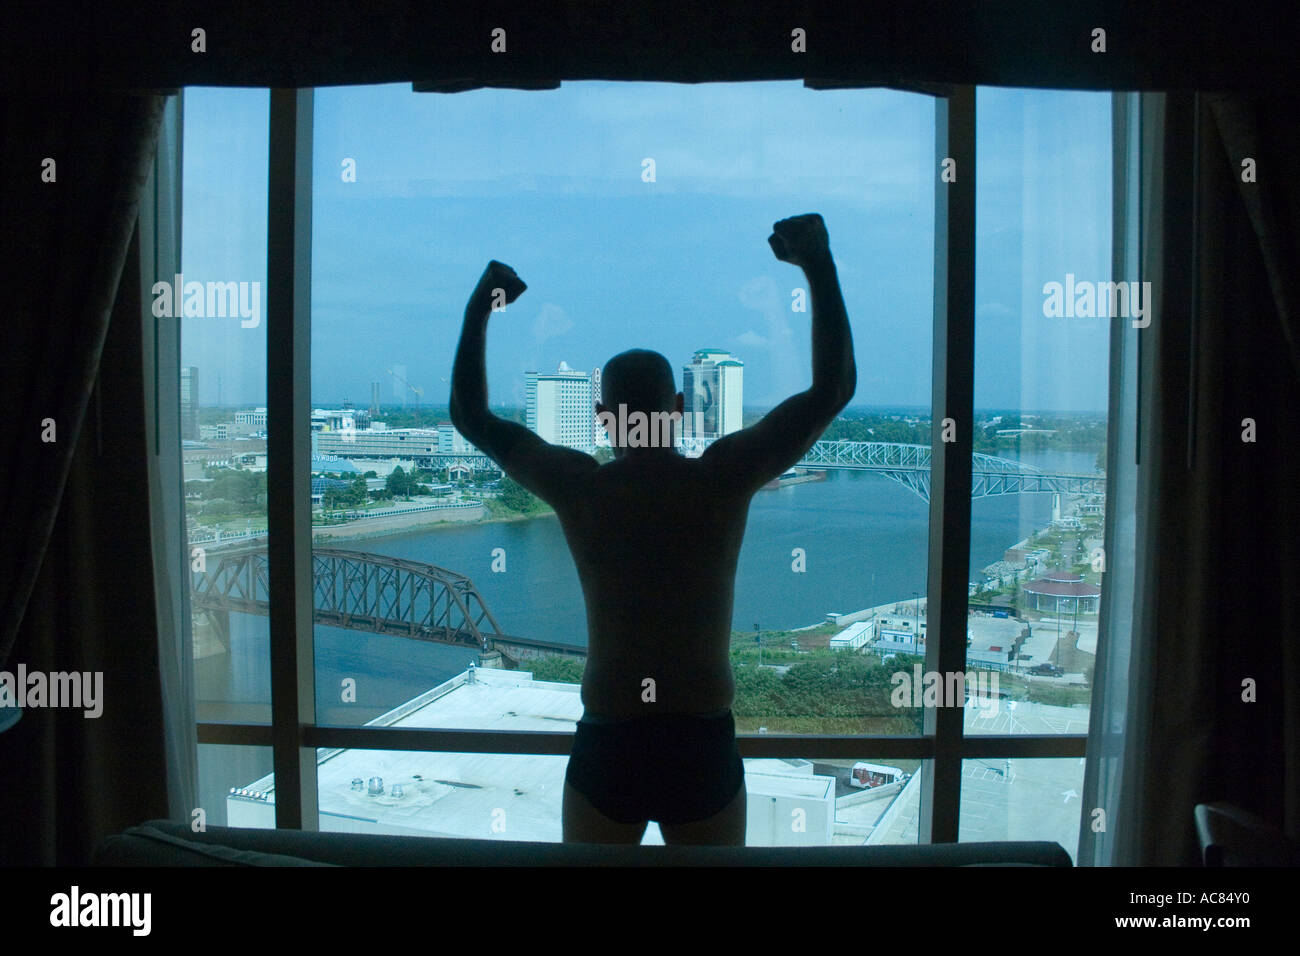 Silhouette of man raised arms looking out of hotel room. - Stock Image